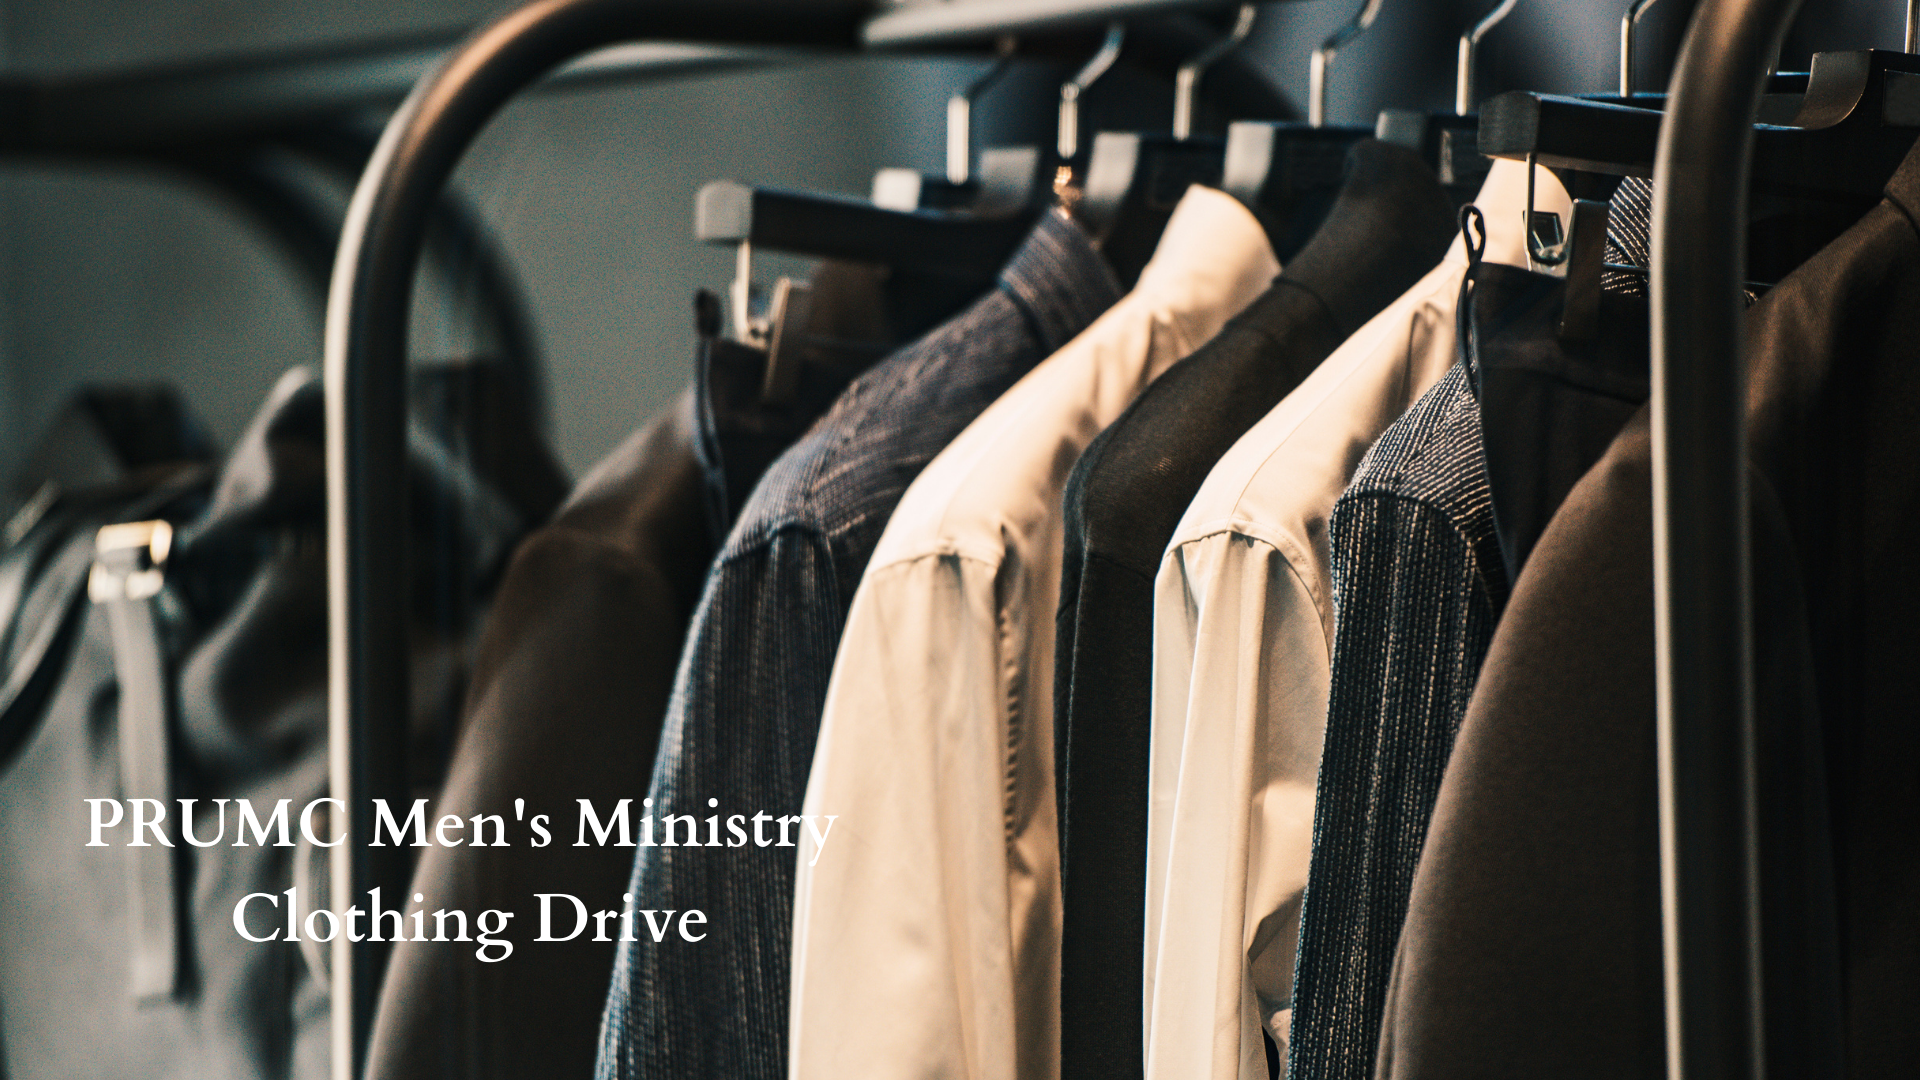 Men's Ministry Clothing Drive